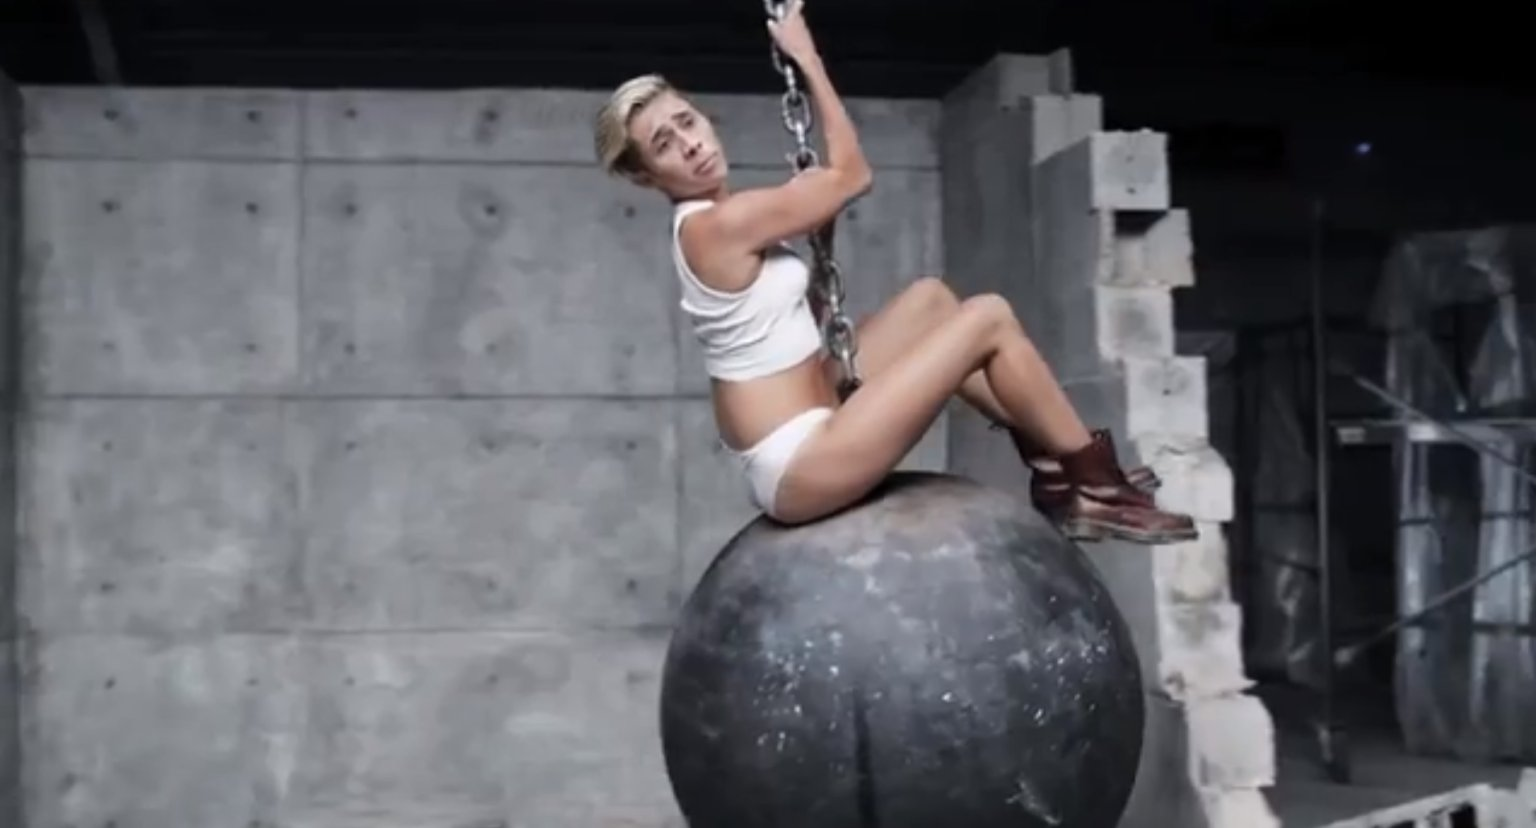 o-MILEY-CYRUS-NICOLAS-CAGE-WRECKING-BALL-facebook